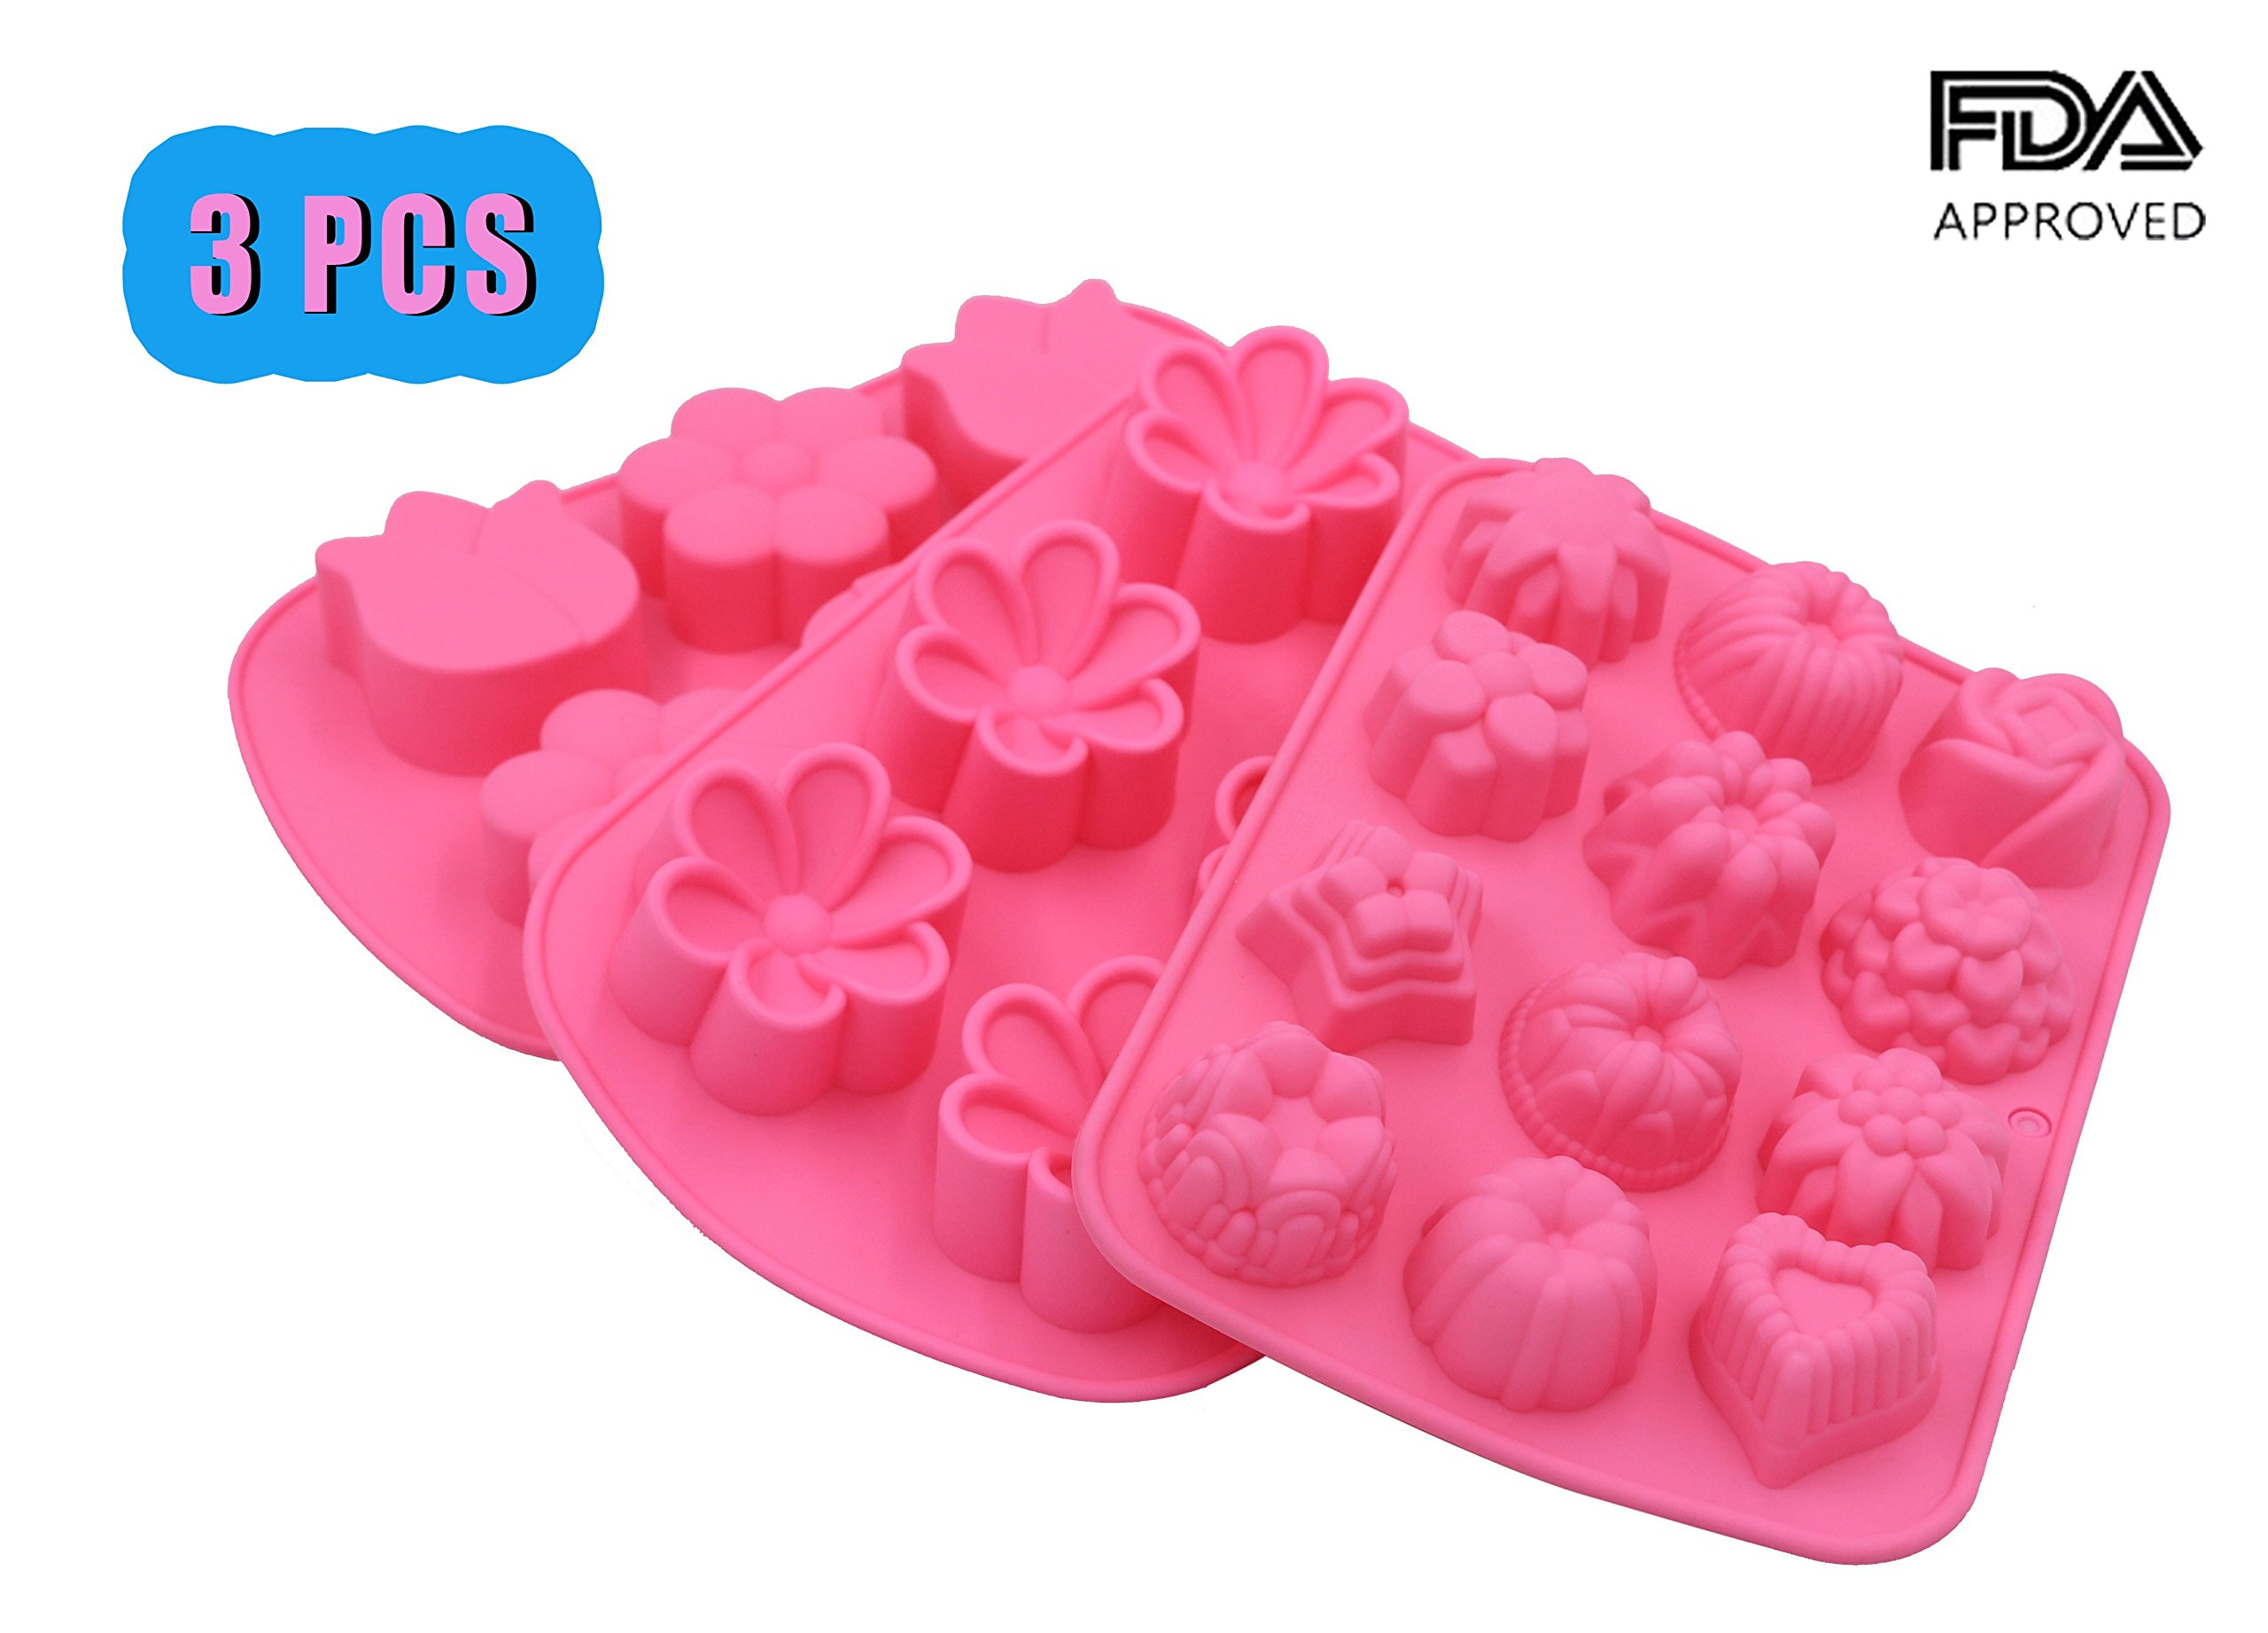 PONECA Cake Mold Silicone Mold 12 Cavity 6 Cavity Flower Shape Cake DIY for Homemade Cake Soap Jelly Pudding Chocolate Silicone Muffin 3PCS Non - Stick